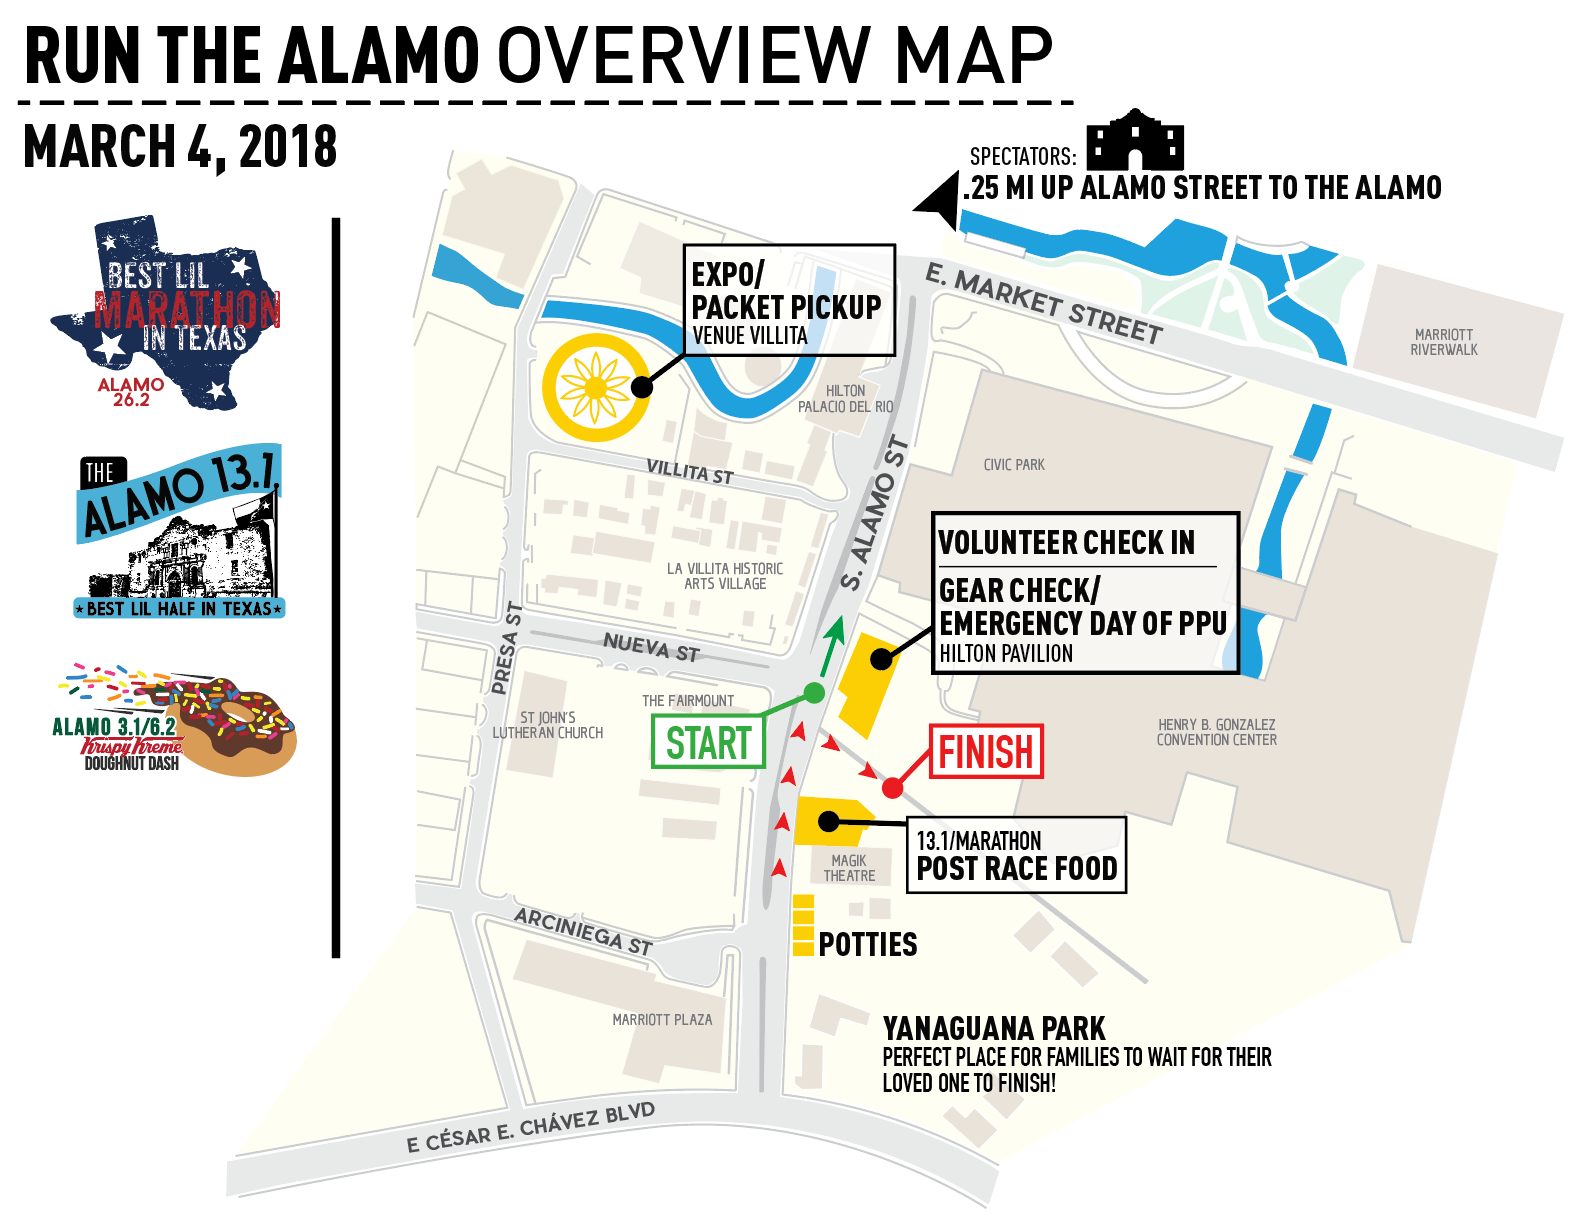 2018 Run The Alamo-Overview map